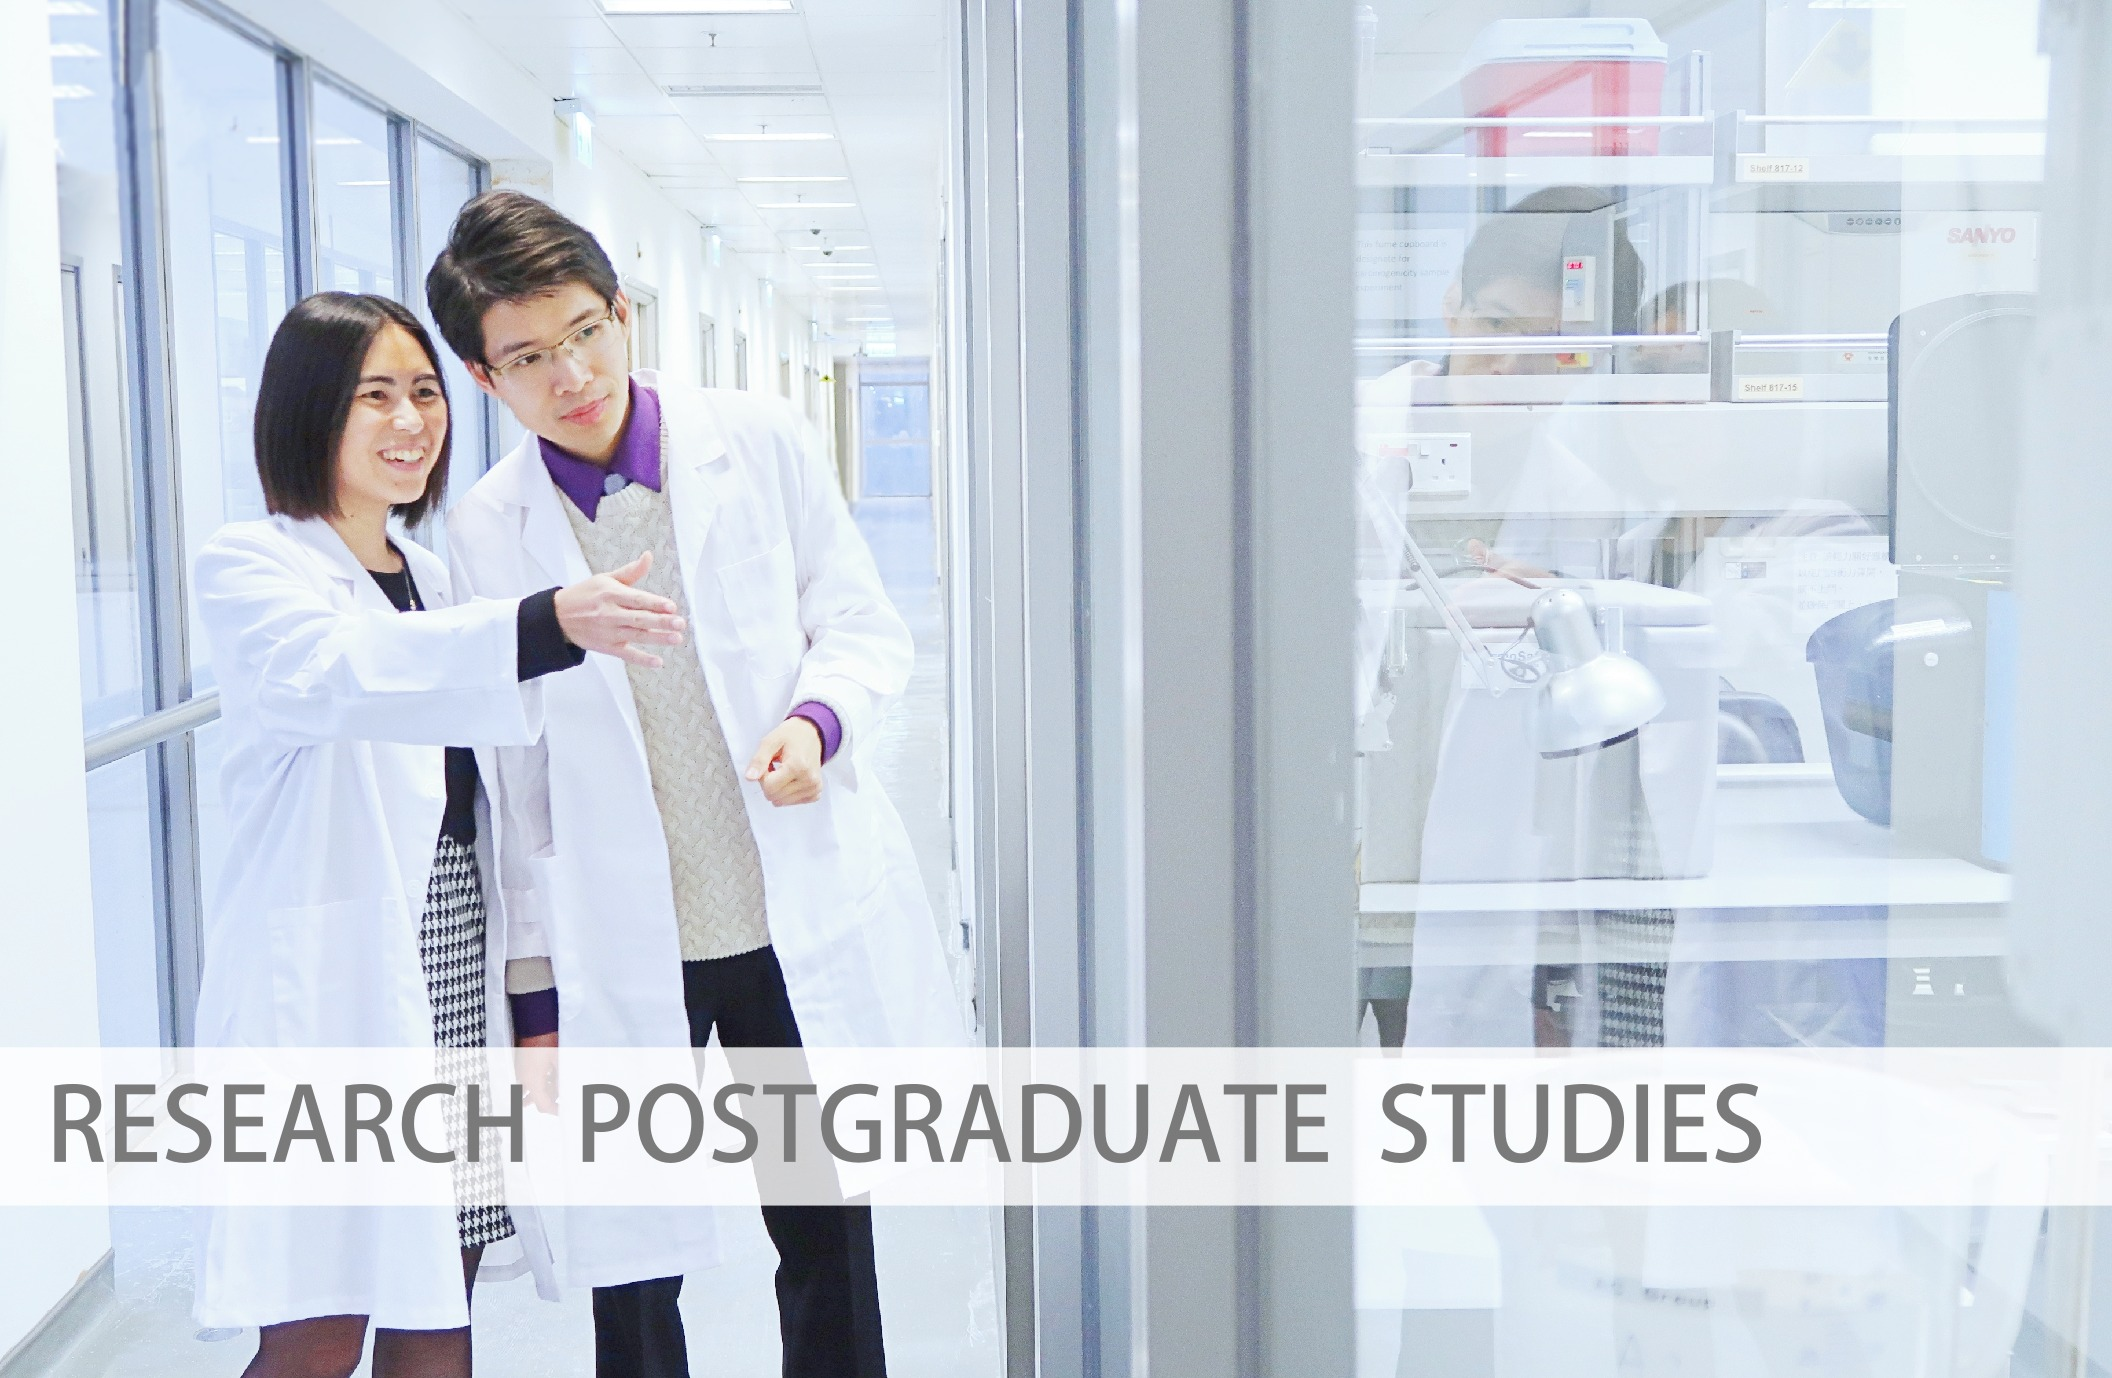 Master of Philosophy in Pharmacy (M. Phil.) & Doctor of Philosophy in Pharmacy (Ph.D.)